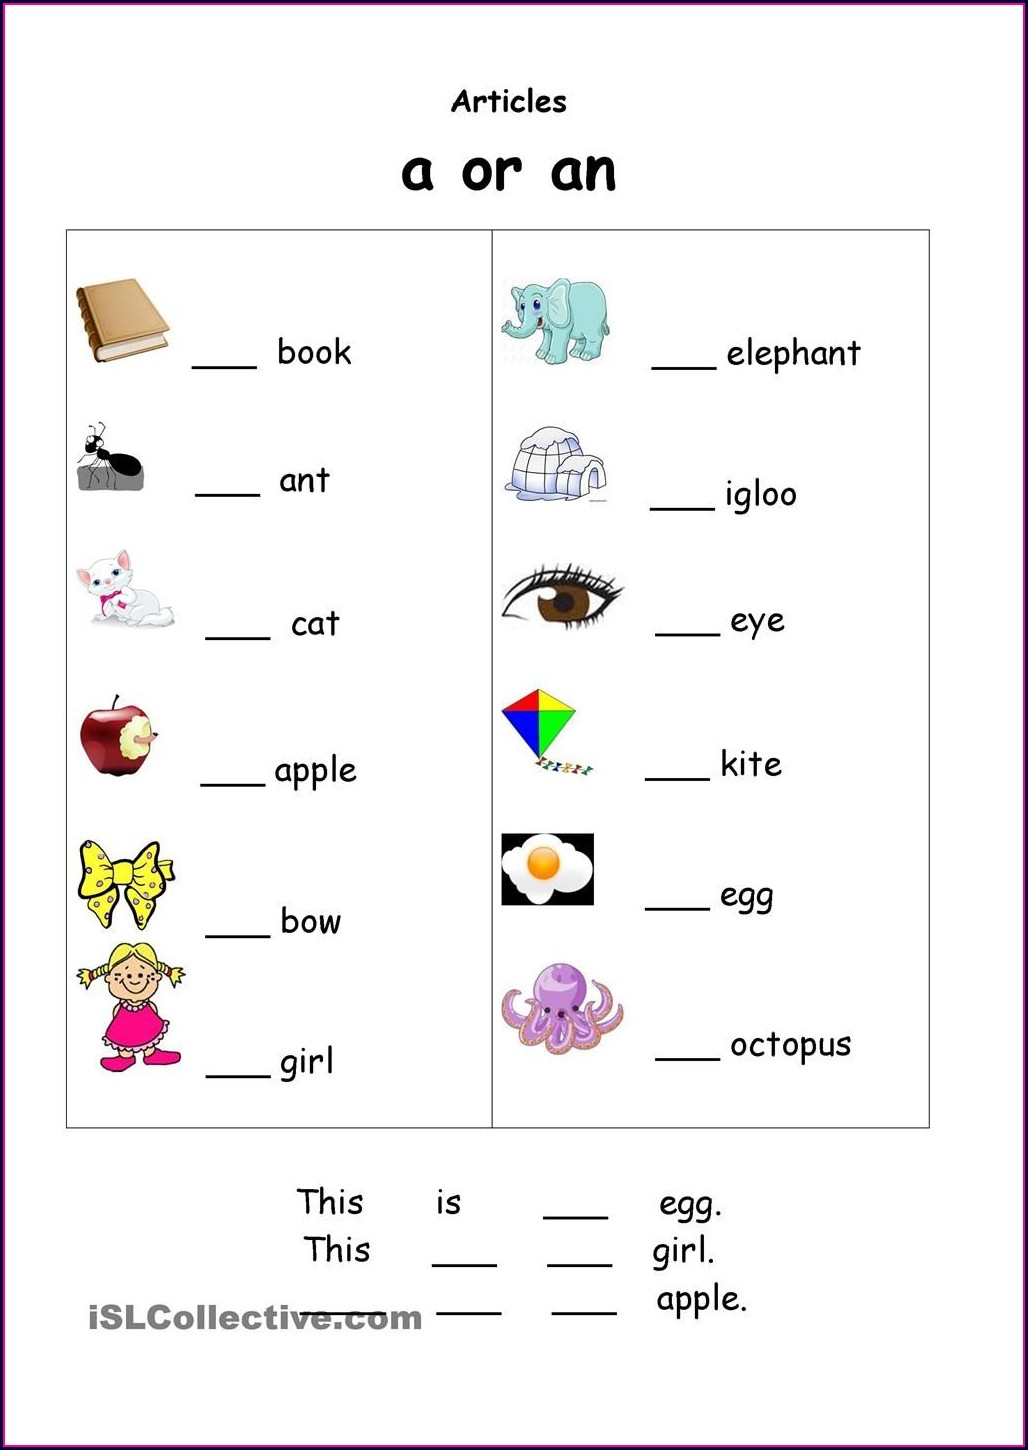 Grade 1 English Worksheets For Kids Kindergarten